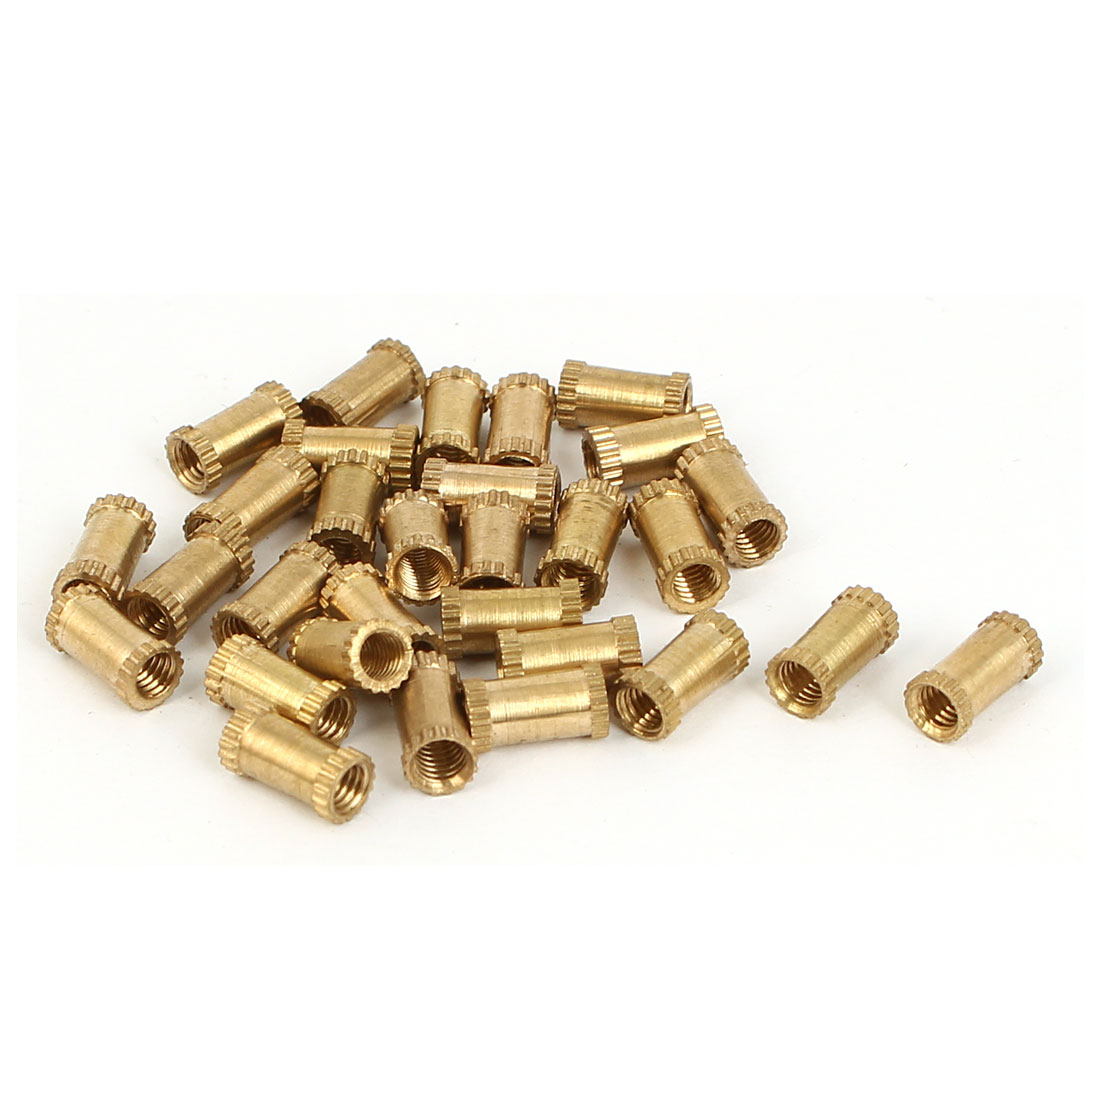 M3 x 4mm x 8mm Female Threaded Insert Embedded Brass Knurled Nuts Gold Tone 30 Pcs